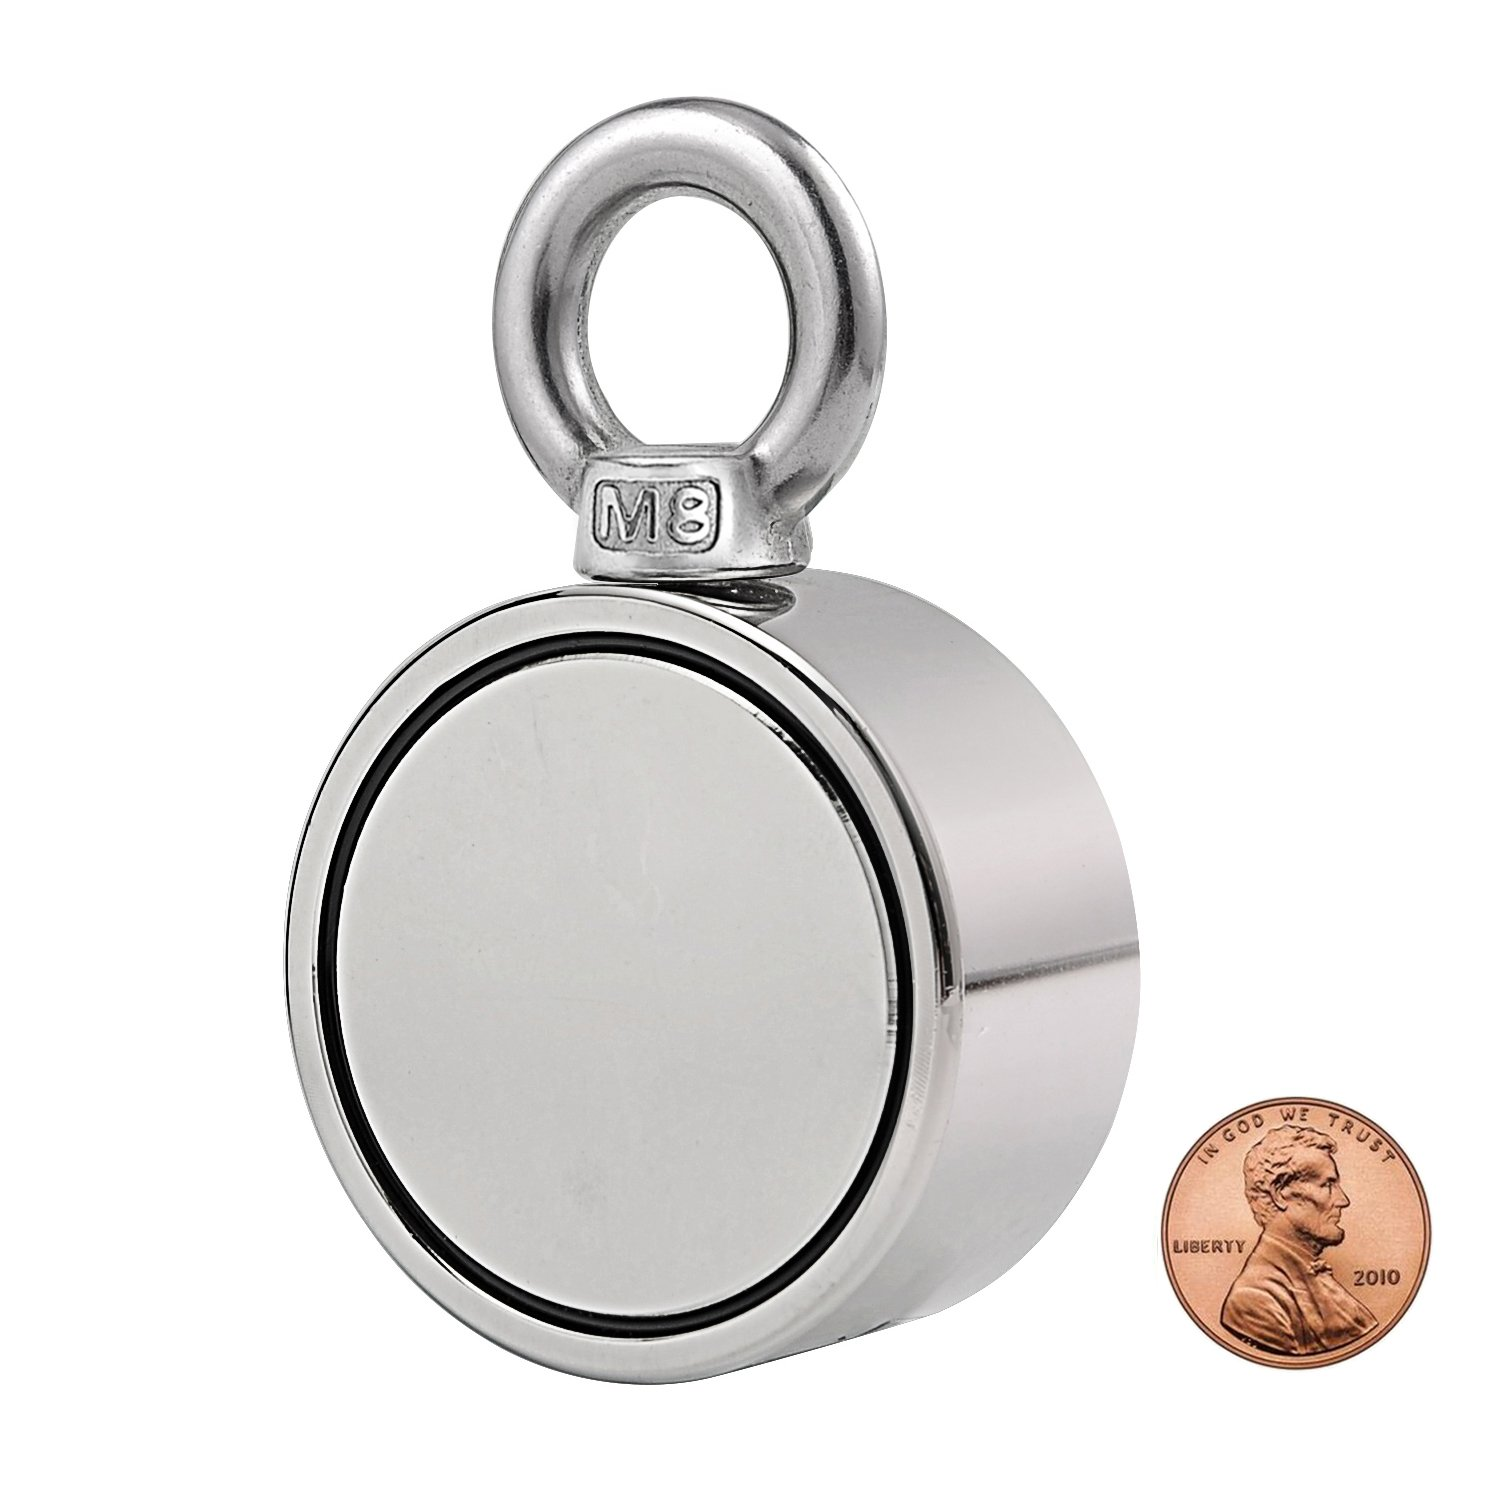 Double Side Round Neodymium Fishing Magnet, Combined 530LBS Pulling Force Super Strong Neodymium Magnet with Eyebolt for Magnet Fishing and Salvage in River - 2.36'' Diameter